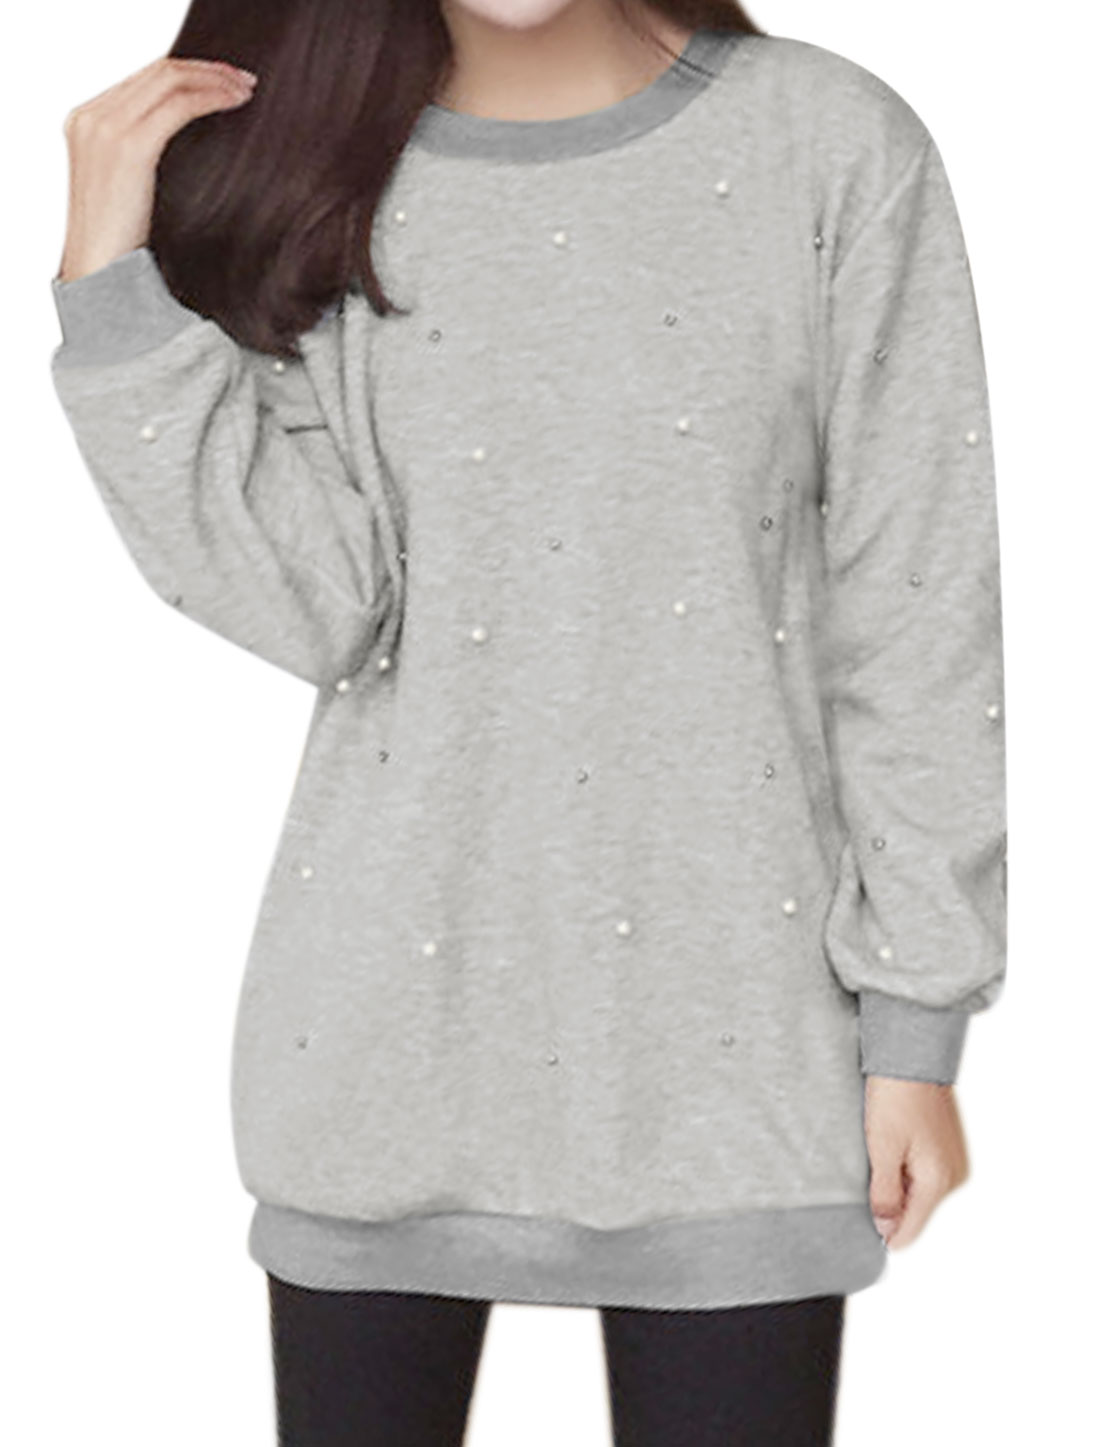 Ladies Beads Embellished Tunic Sweatshirt Gray S